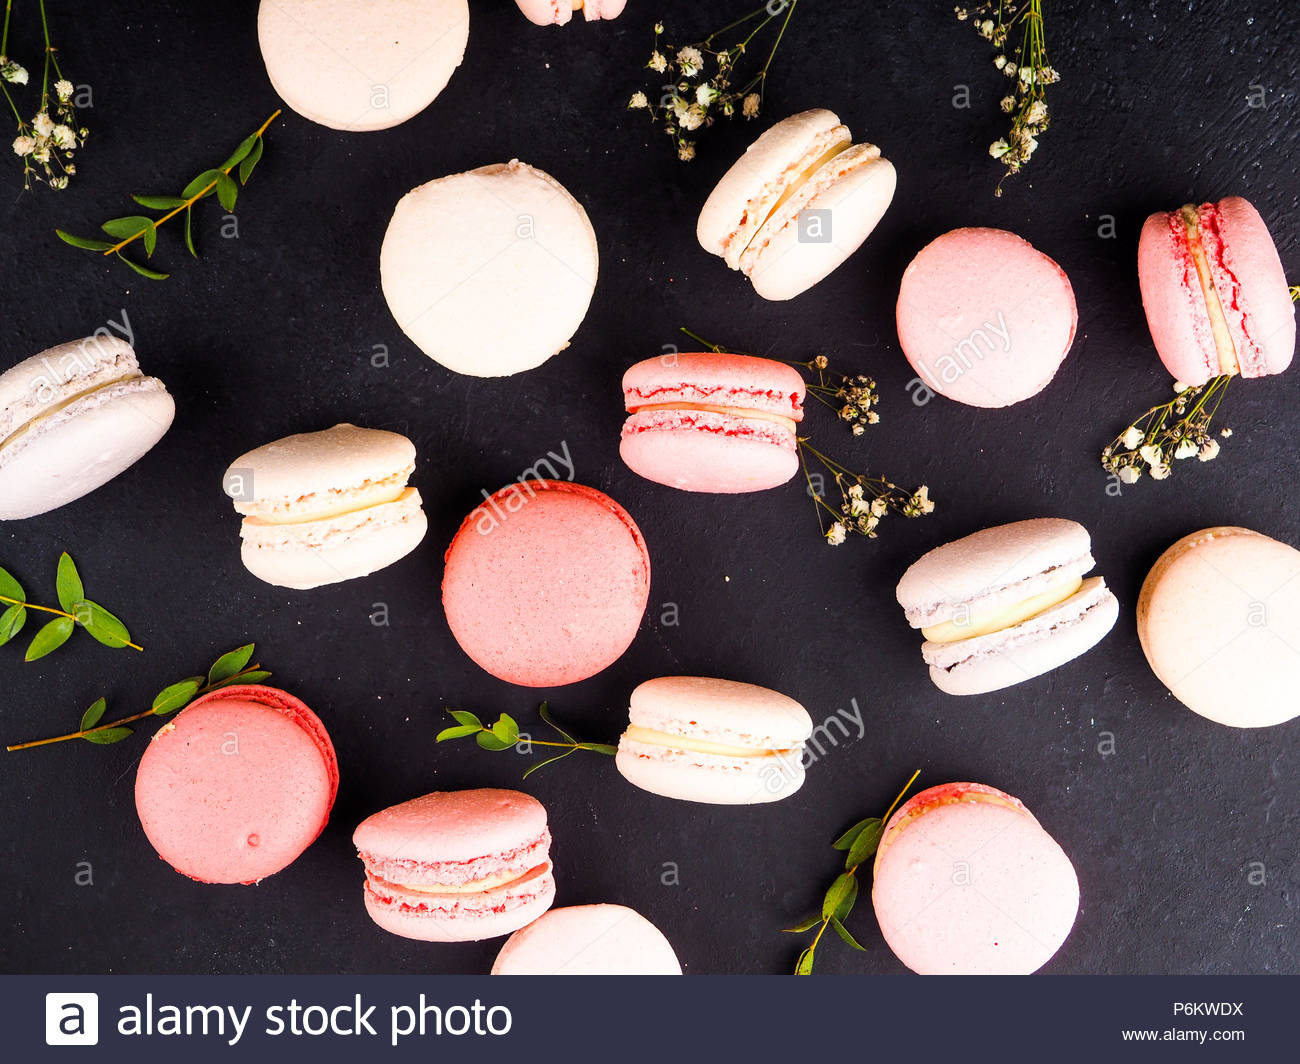 Colorful french macarons background close upDifferent colorful 1300x1064